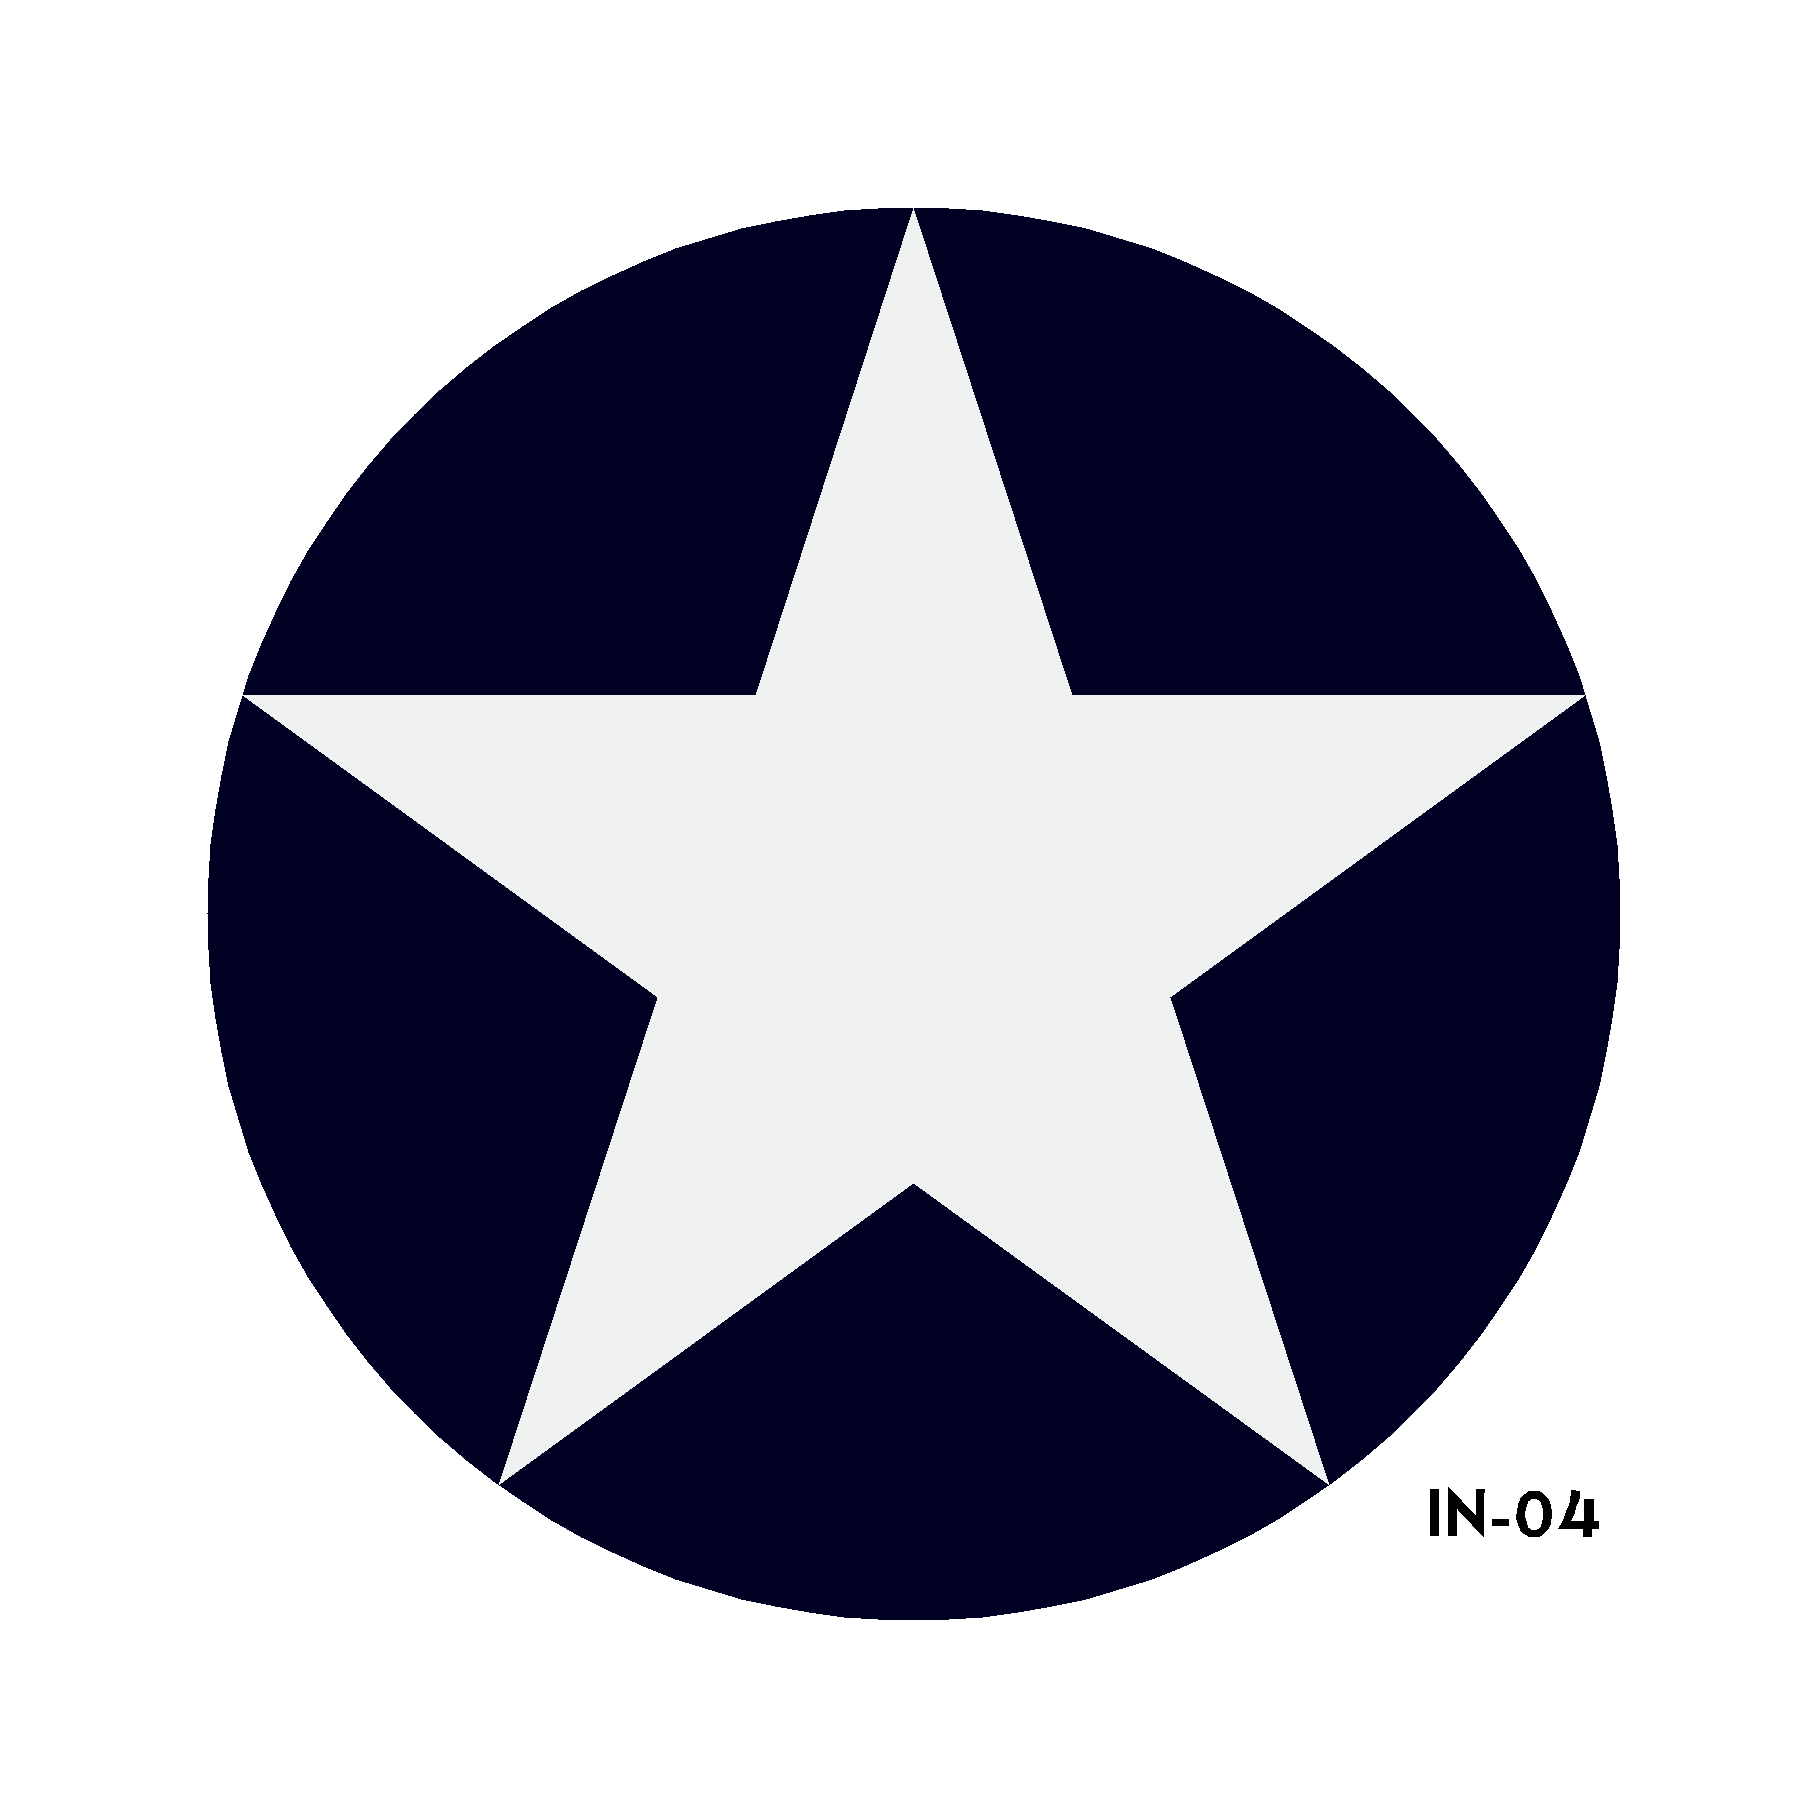 U.S. Army Air Force National Star in Circle Insignia - Spec. No. 24102K